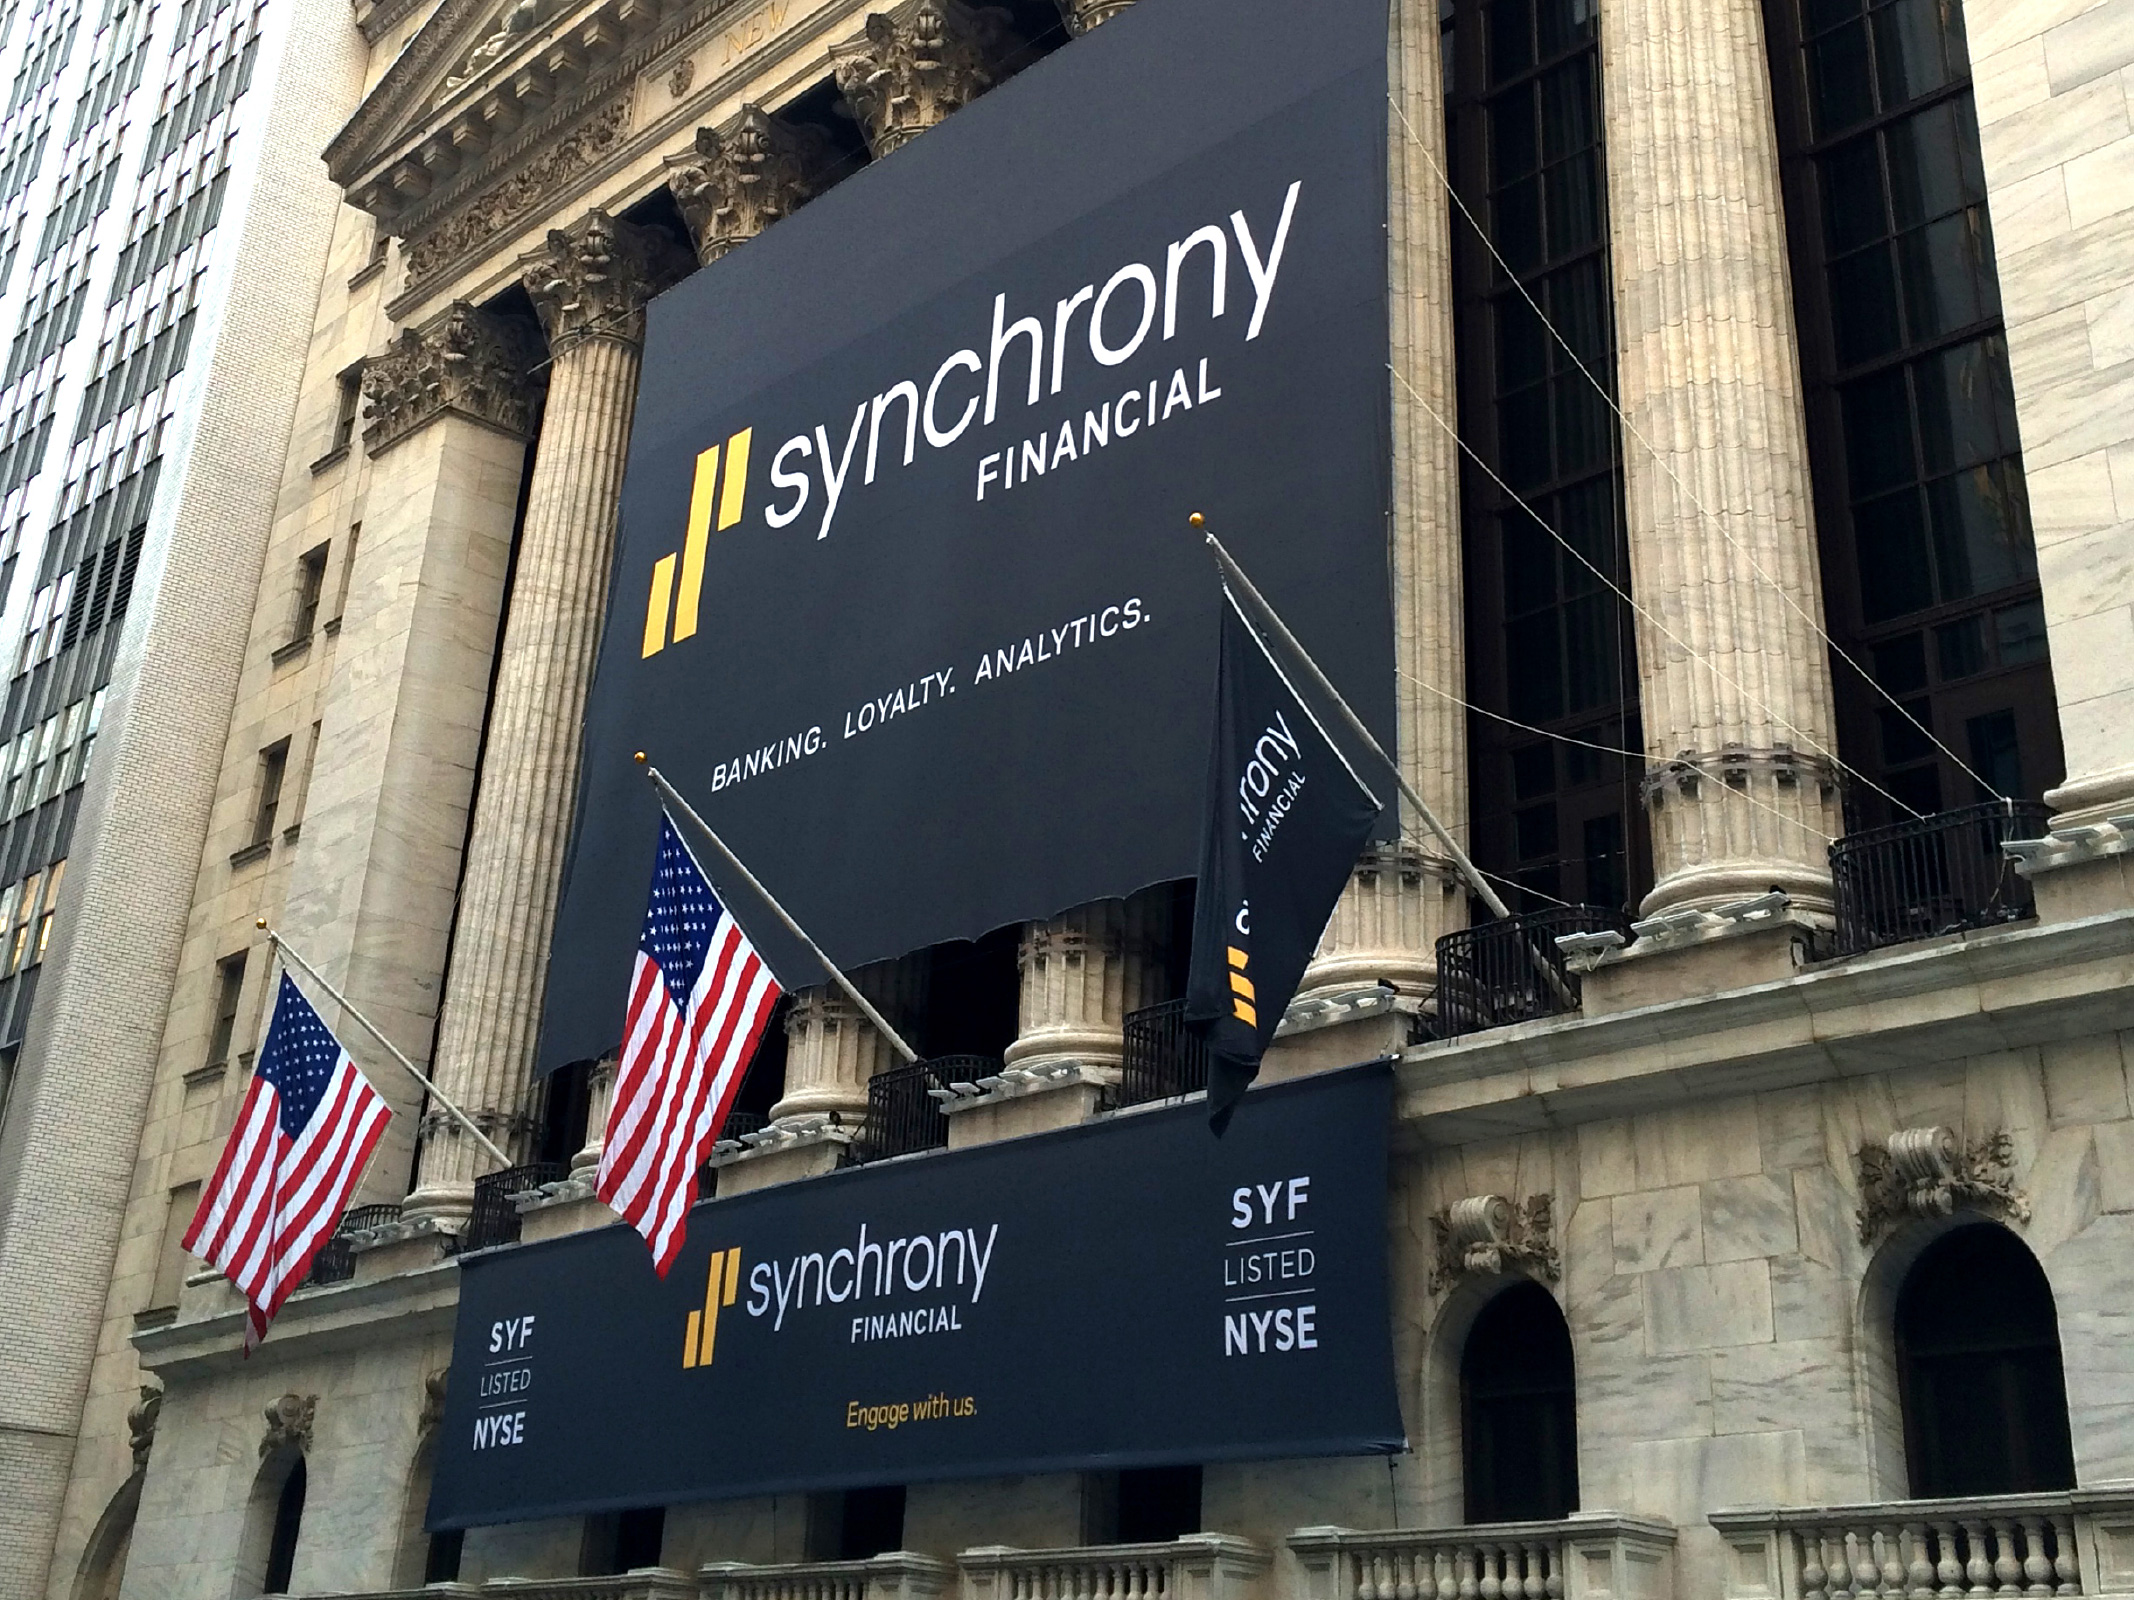 Matthijs Matt van Leeuwen, Jessica Staley, Craig Stout, Synchrony Financial Logo, Interbrand New York